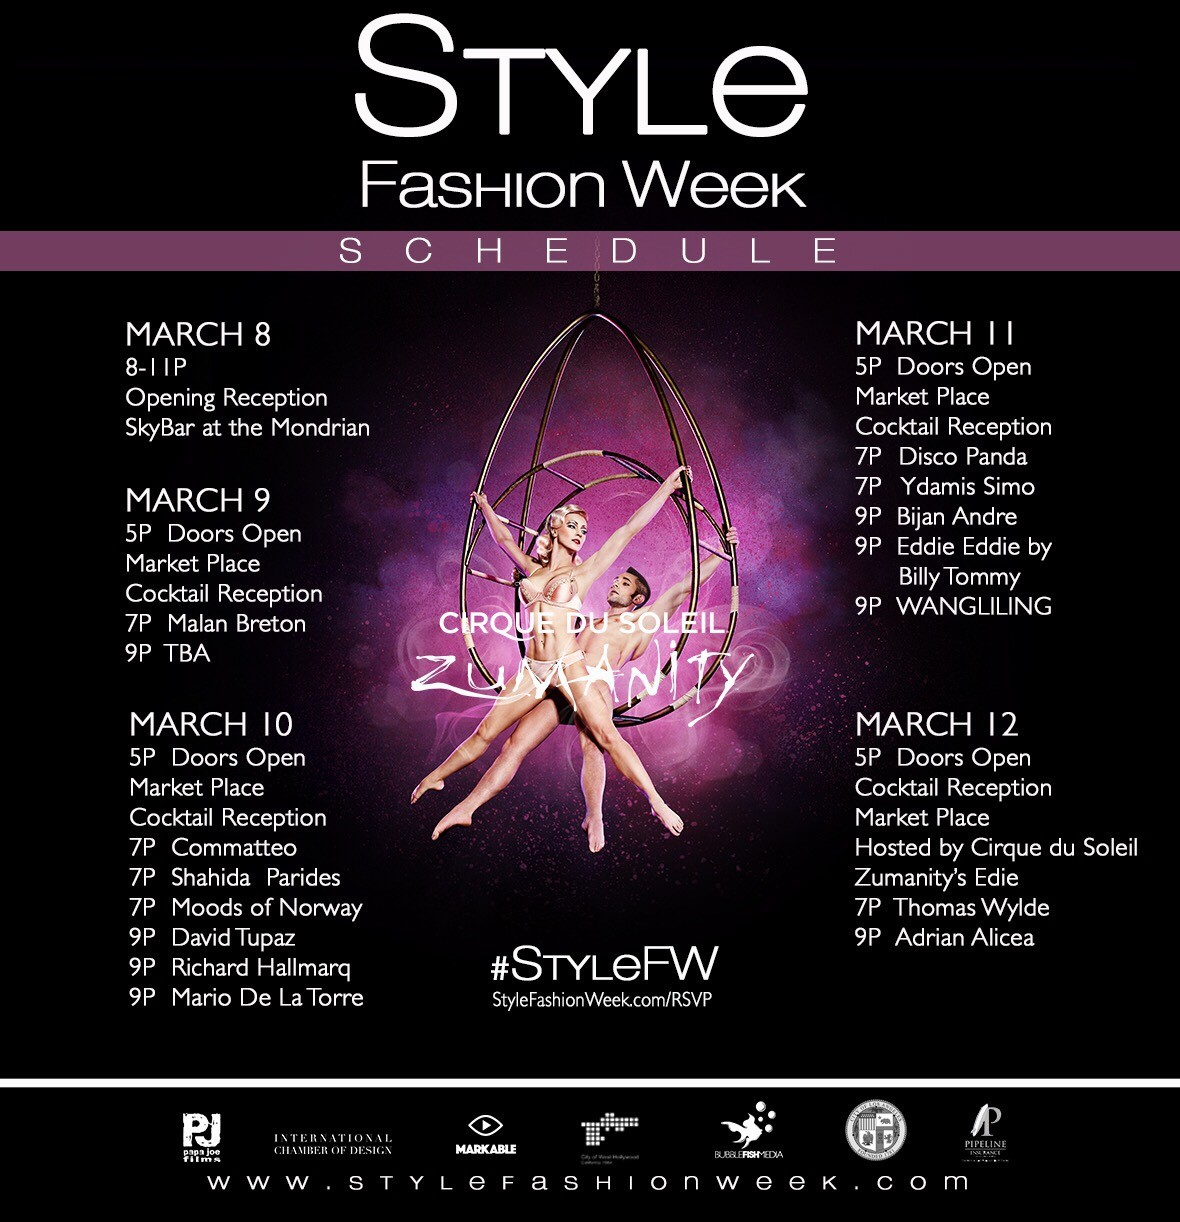 Style Fashion Week Los Angeles 12th Season To Feature Fashion Music And Art Spectacular At The Pacific Design Center March 9 12 2017